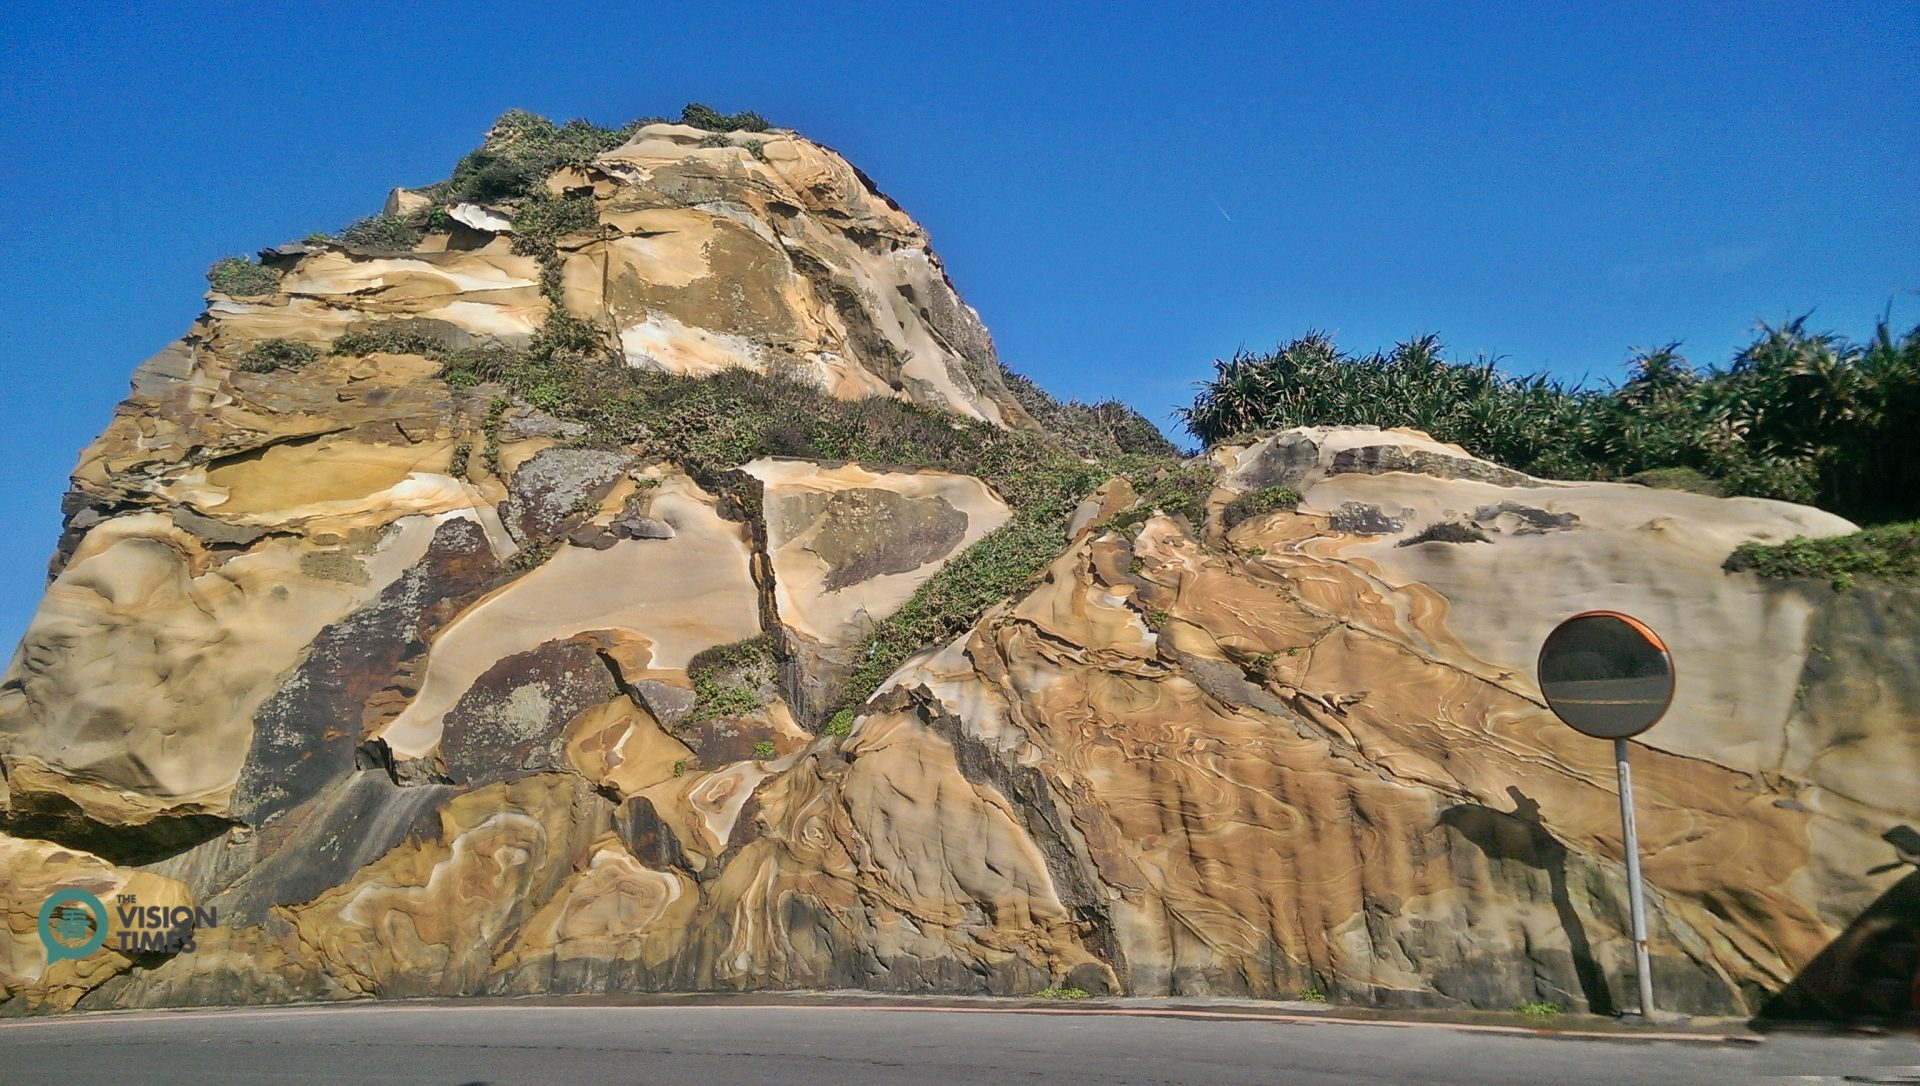 The Wanli District is full of amazing rock formations. (Image: Billy Shyu / Vision Times)